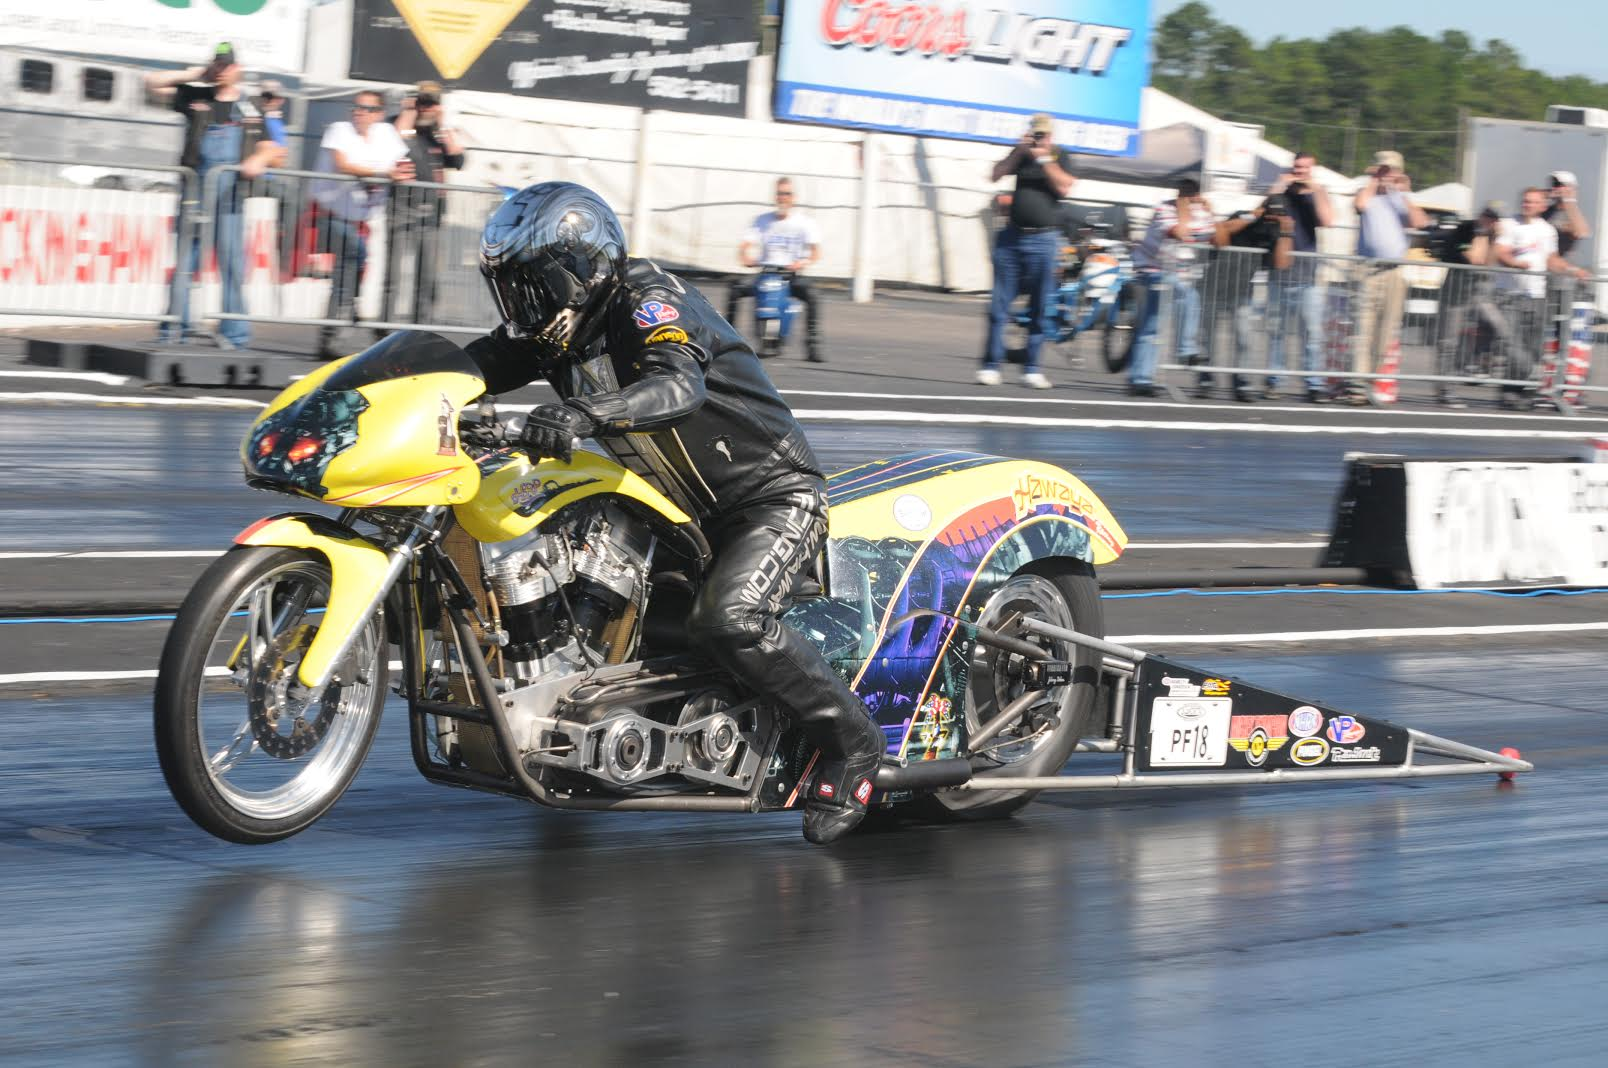 GEISS WINS FIRST RAY PRICE TOP FUEL TITLE AT THE ROCK